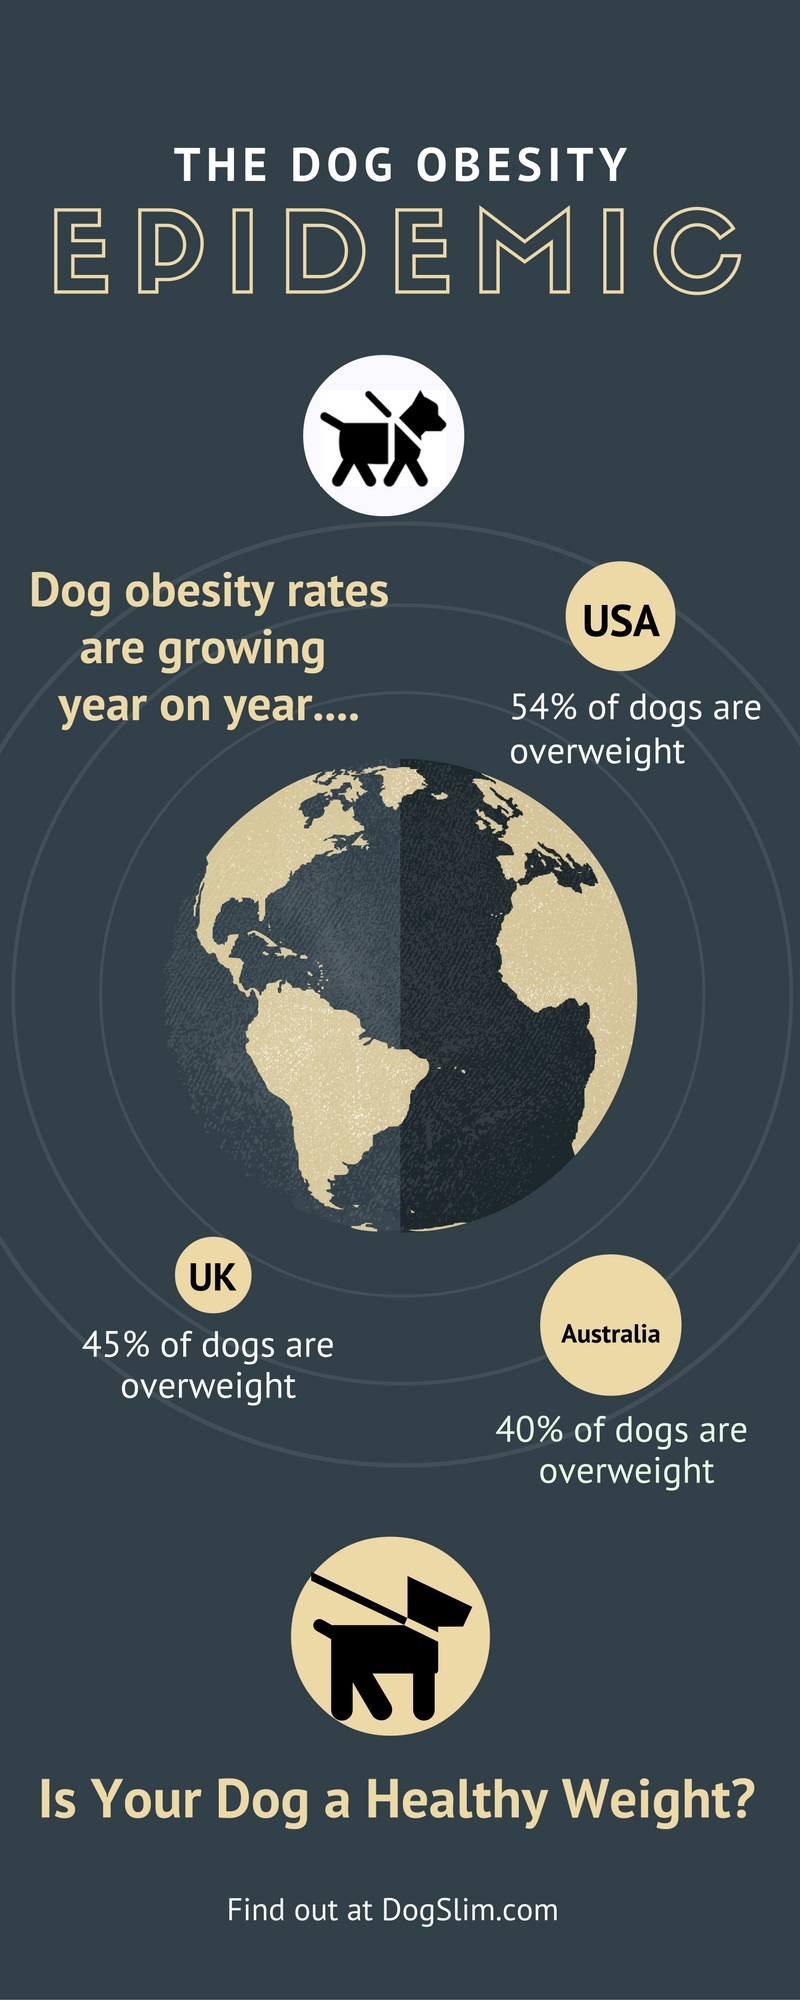 The dog obesity in USA, Australia